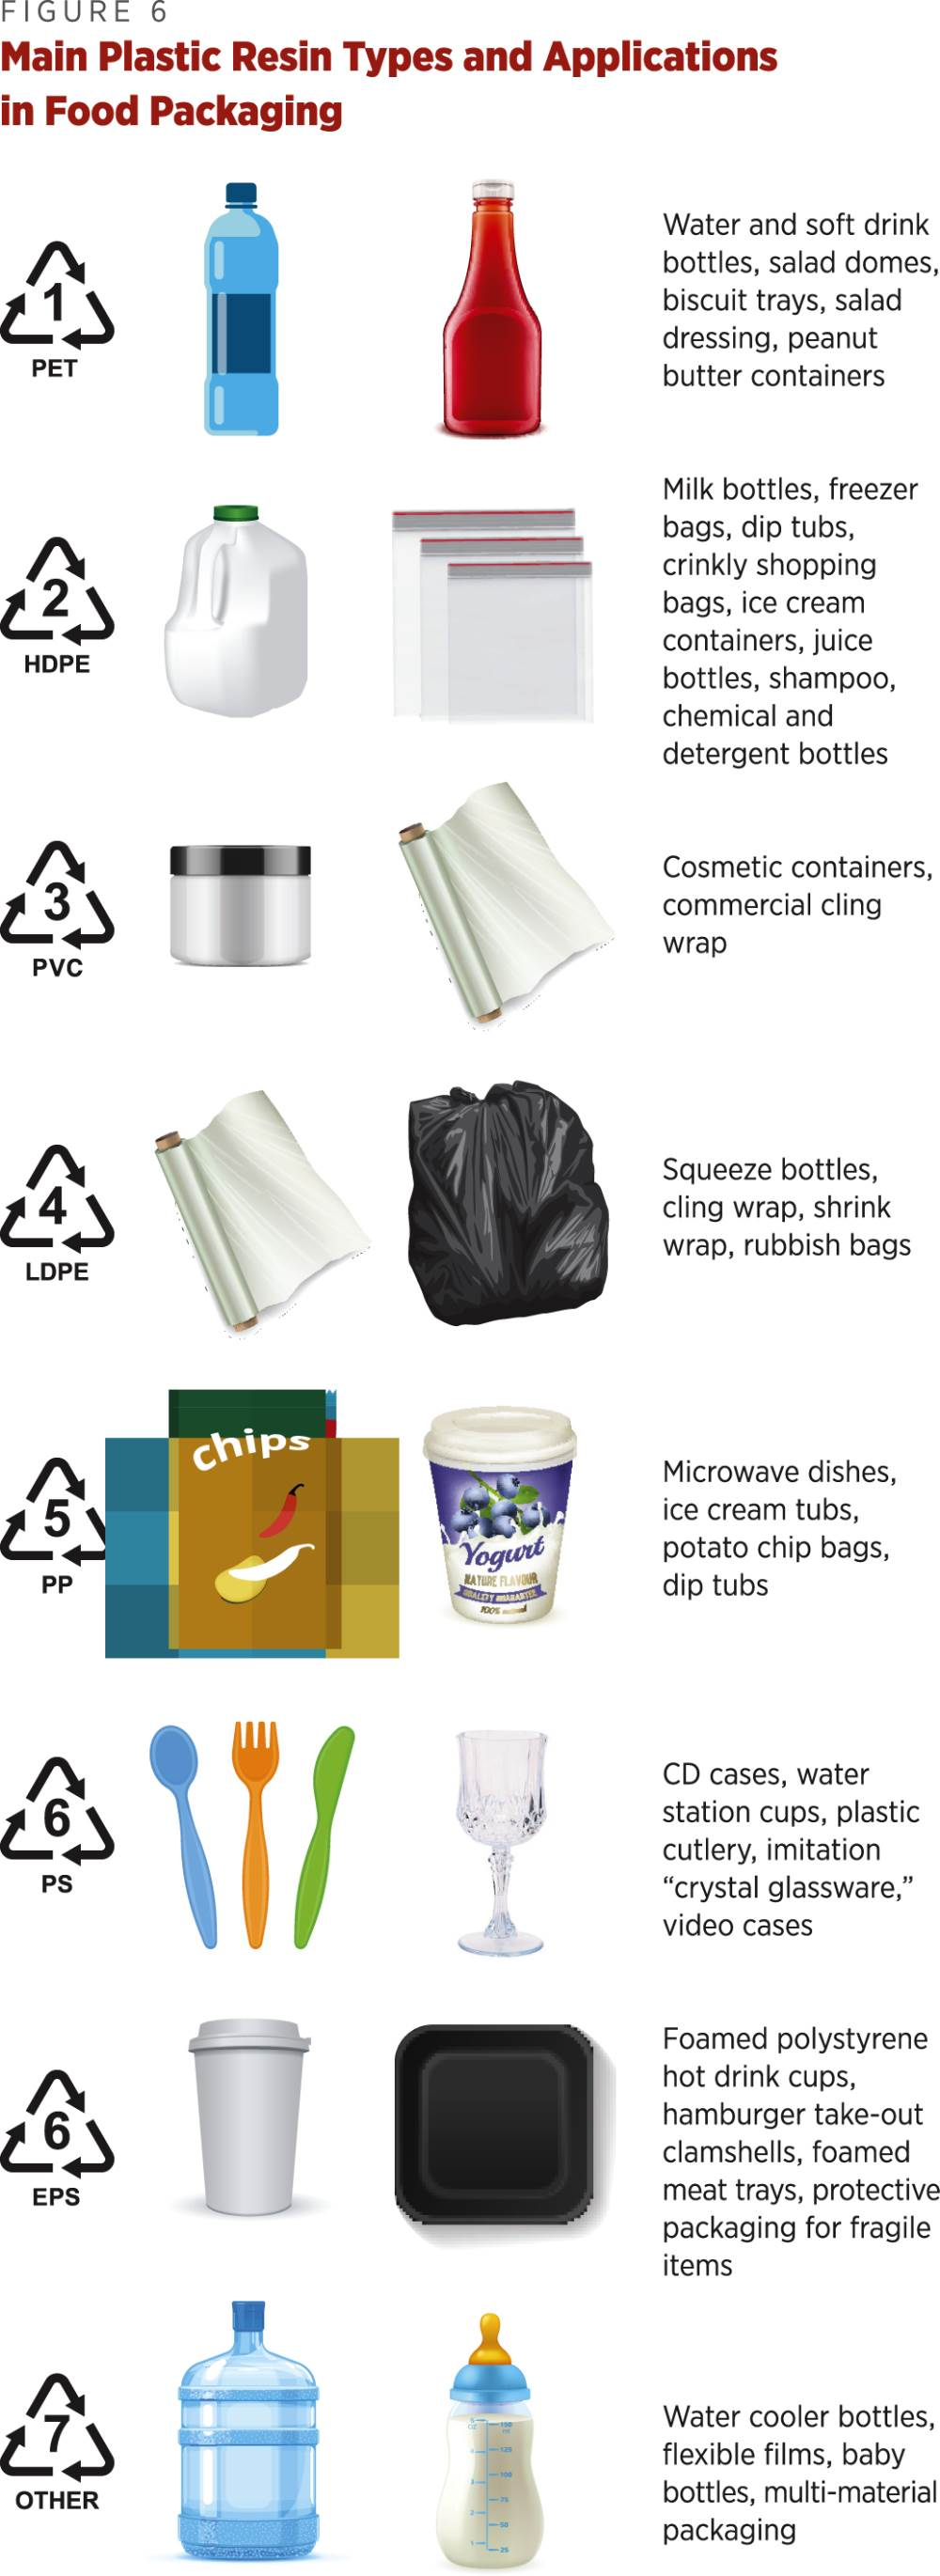 Blog Archives | Page 7 of 17 | Break Free From Plastic